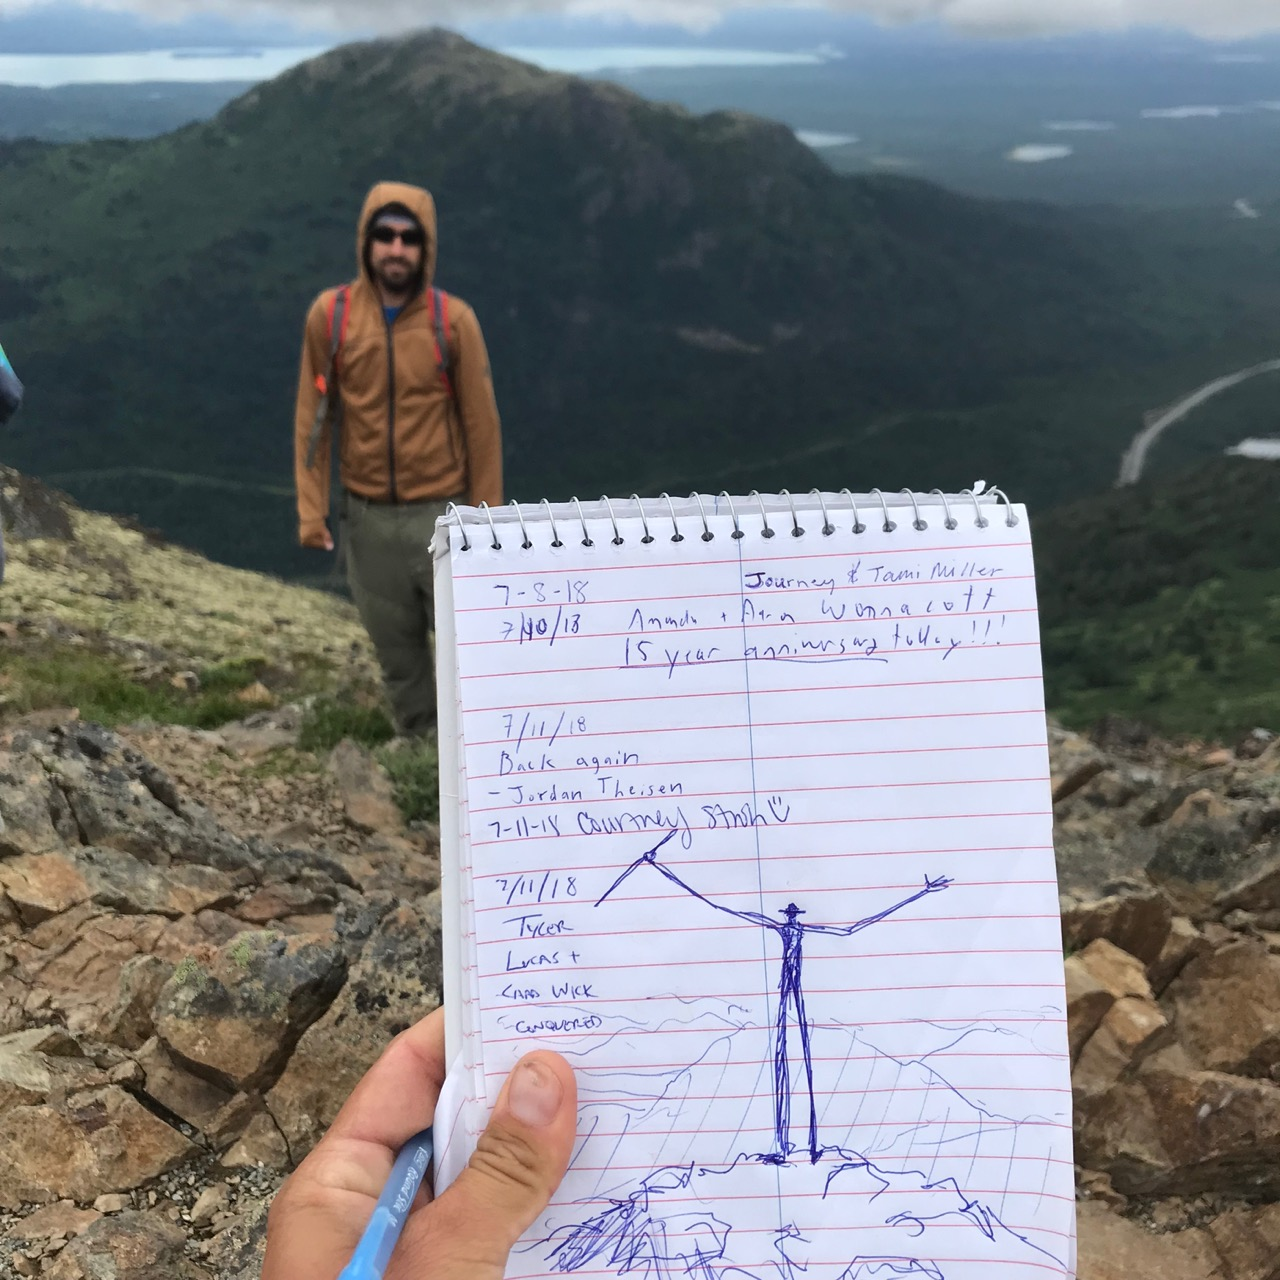 My signature in the notebook at the summit, a sketch capturing how I felt about the morning's hike.